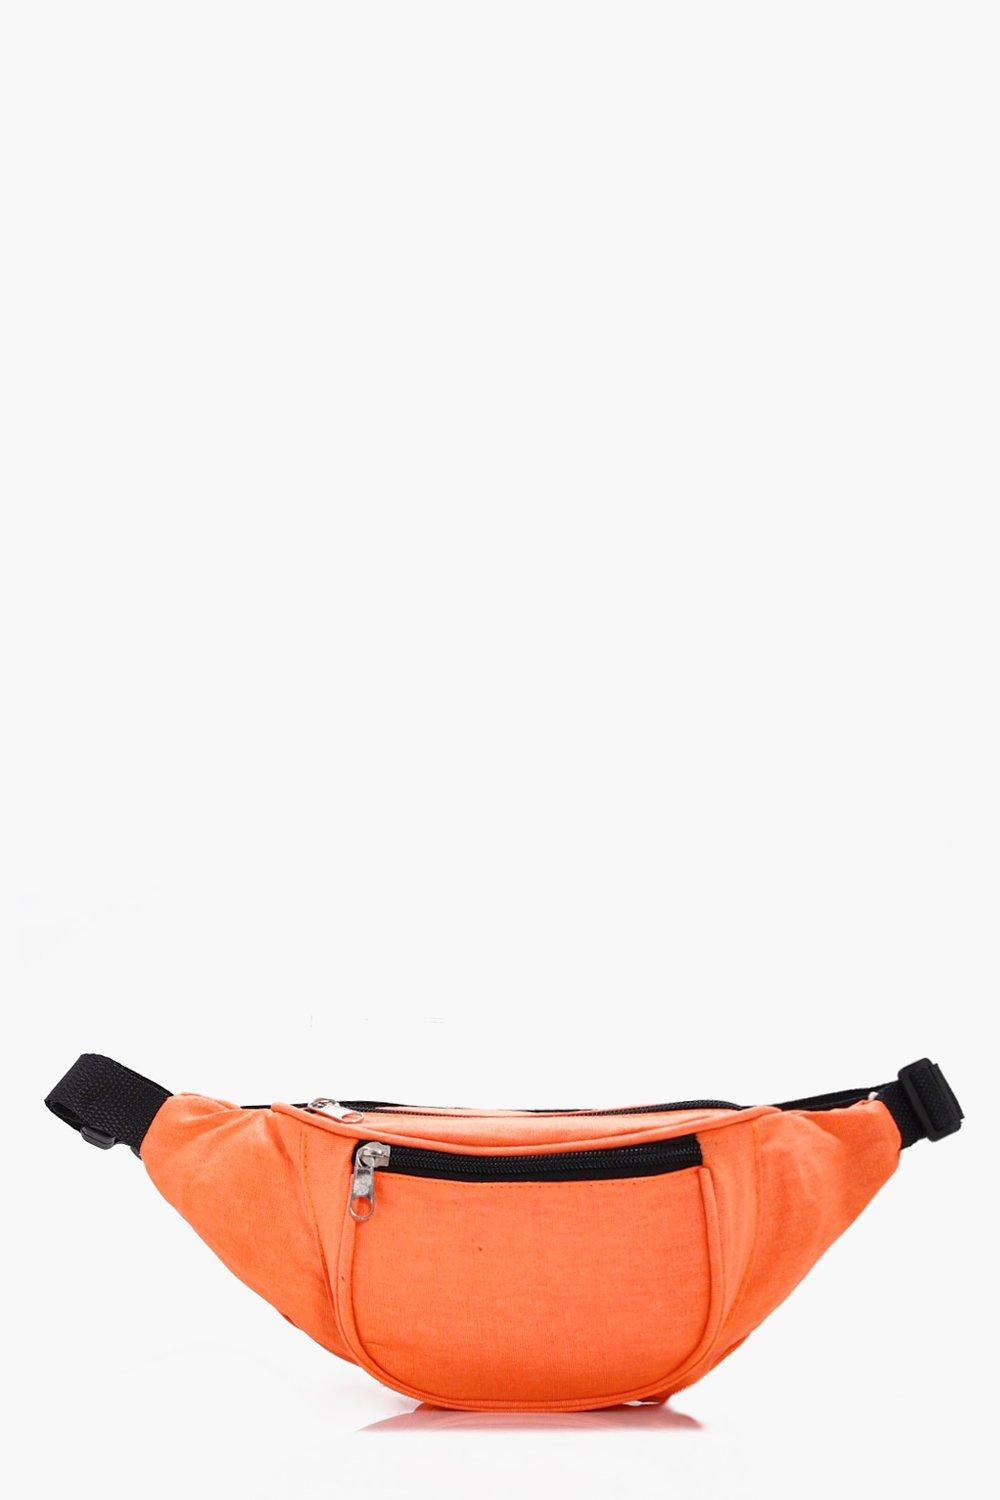 Bright Neon Bumbag - orange - Katie Bright Neon Bu